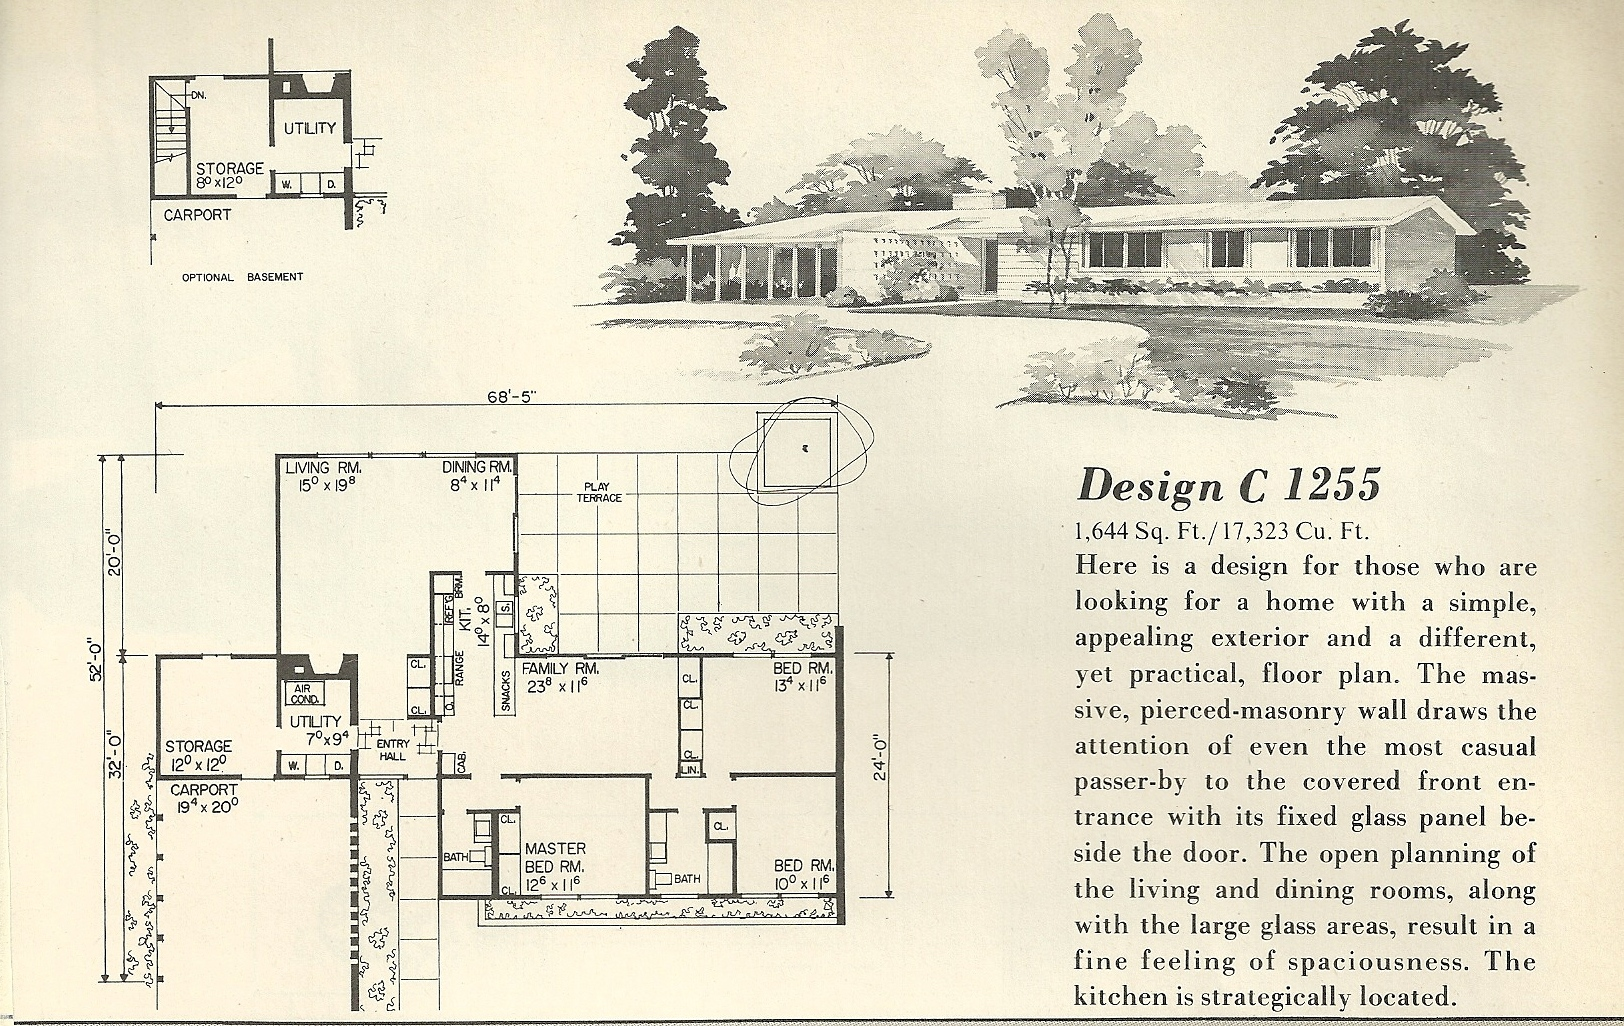 Vintage house plans 1255 antique alter ego for Mid century home plans